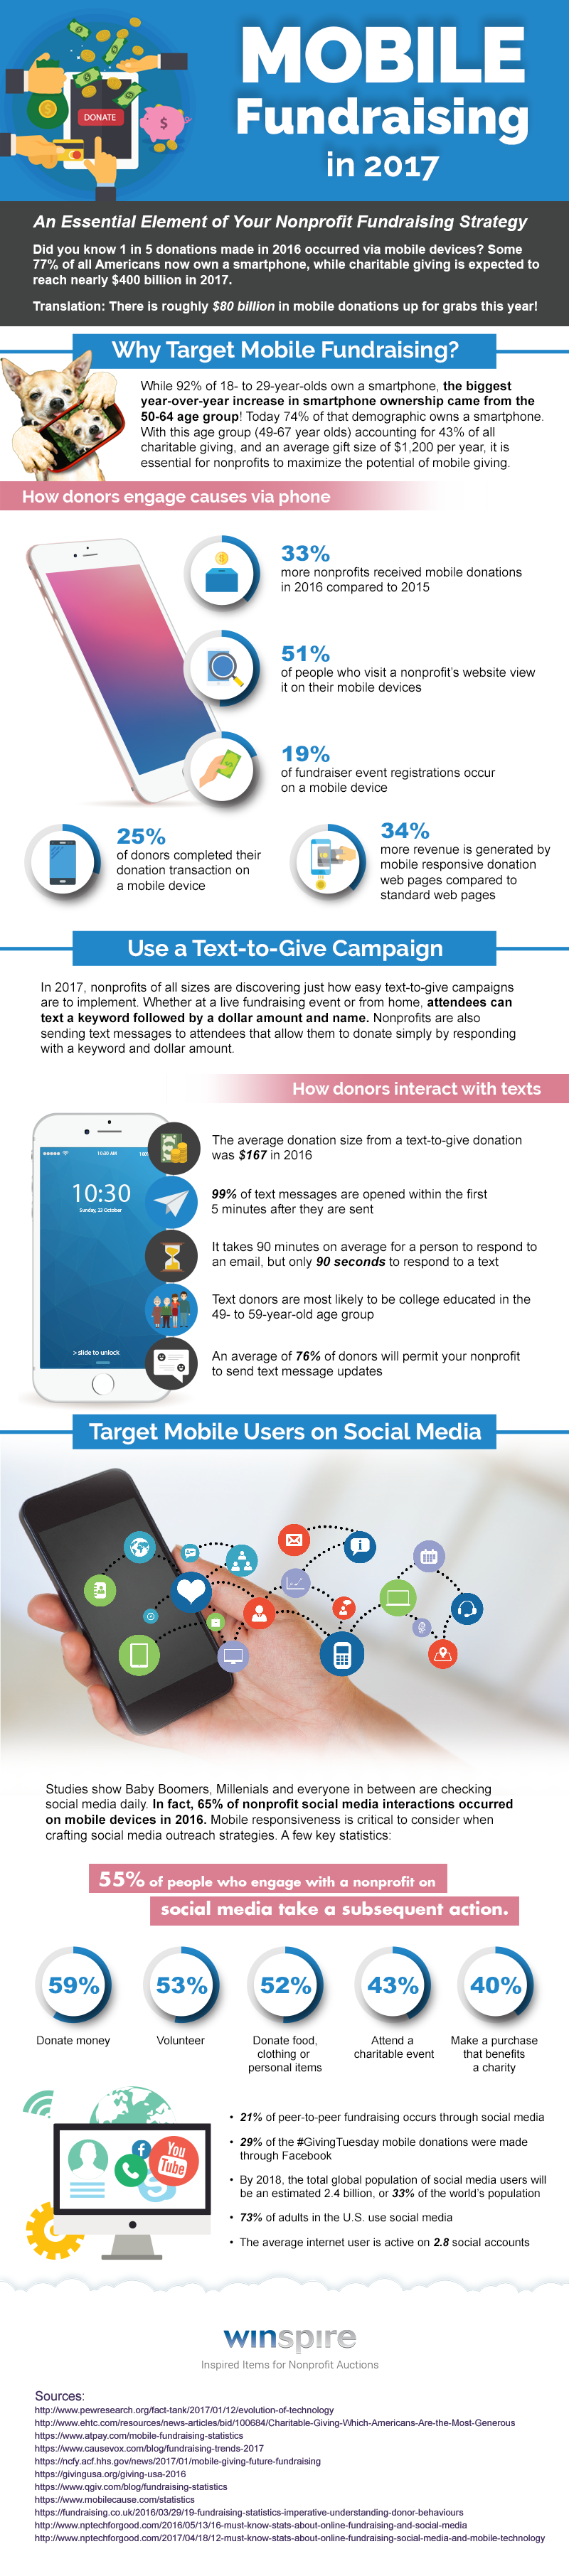 Mobile_Fundraising_in_2017-Infographic.png